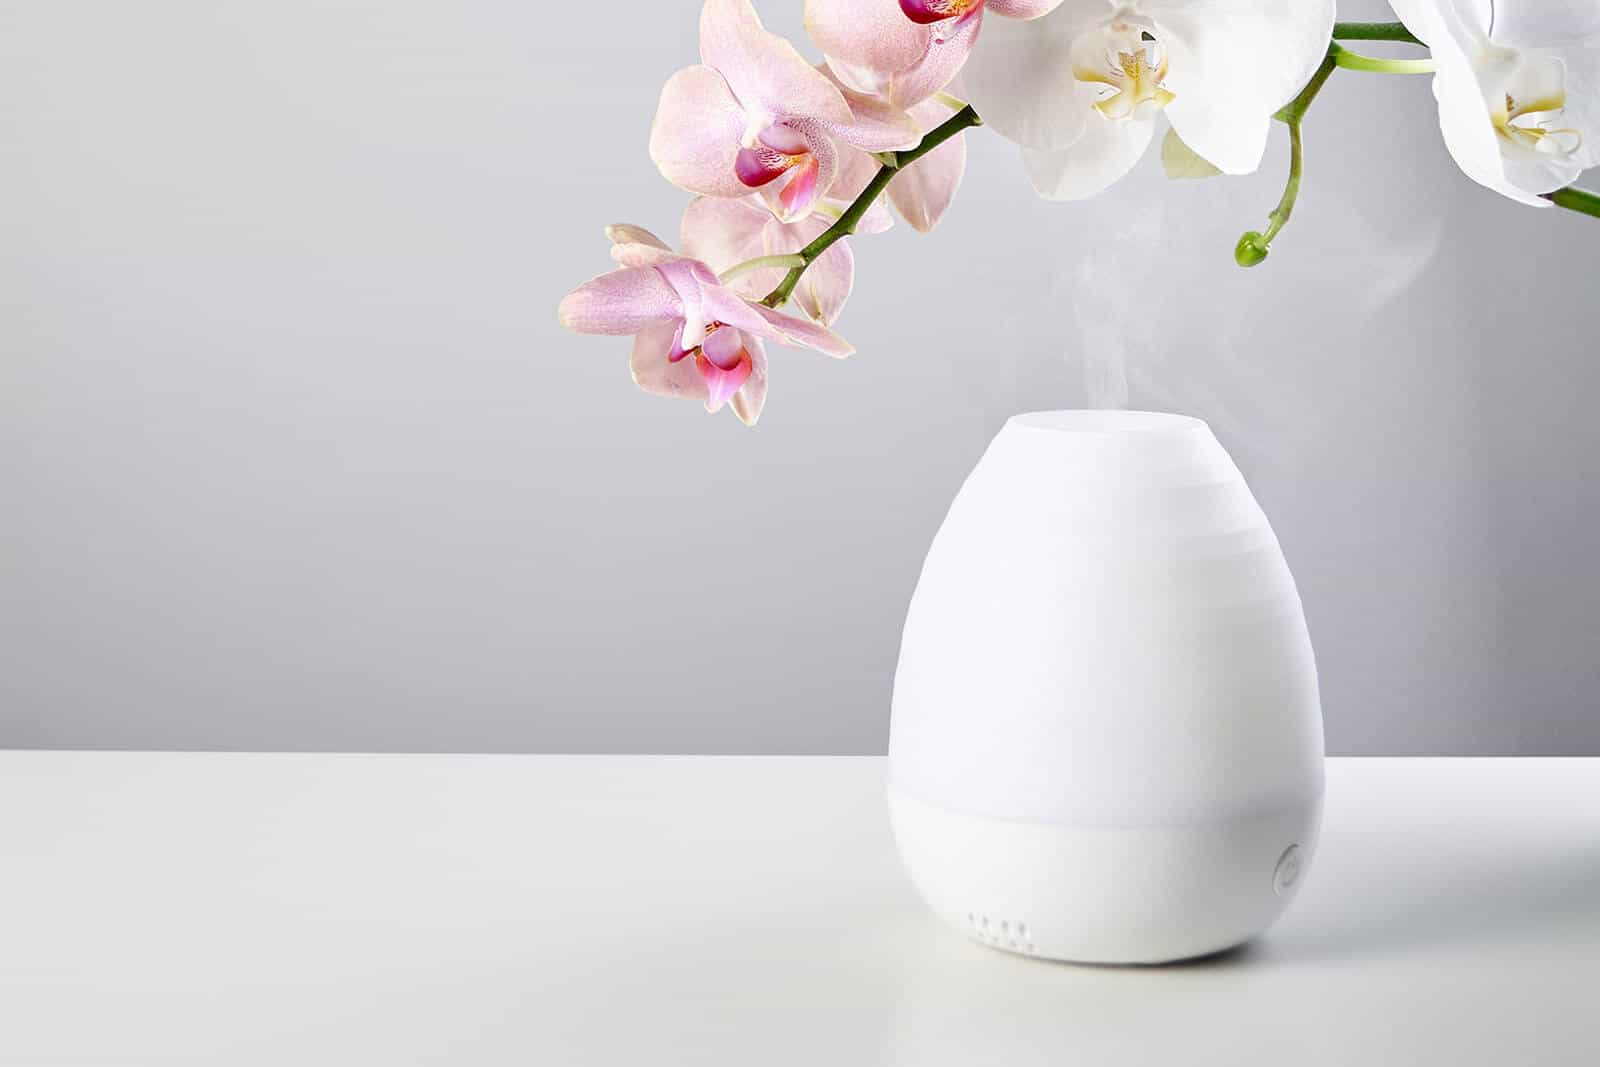 wellnessaromas-aromatherapy_essential-oil_how-choose-mini-essential-oil-diffuser